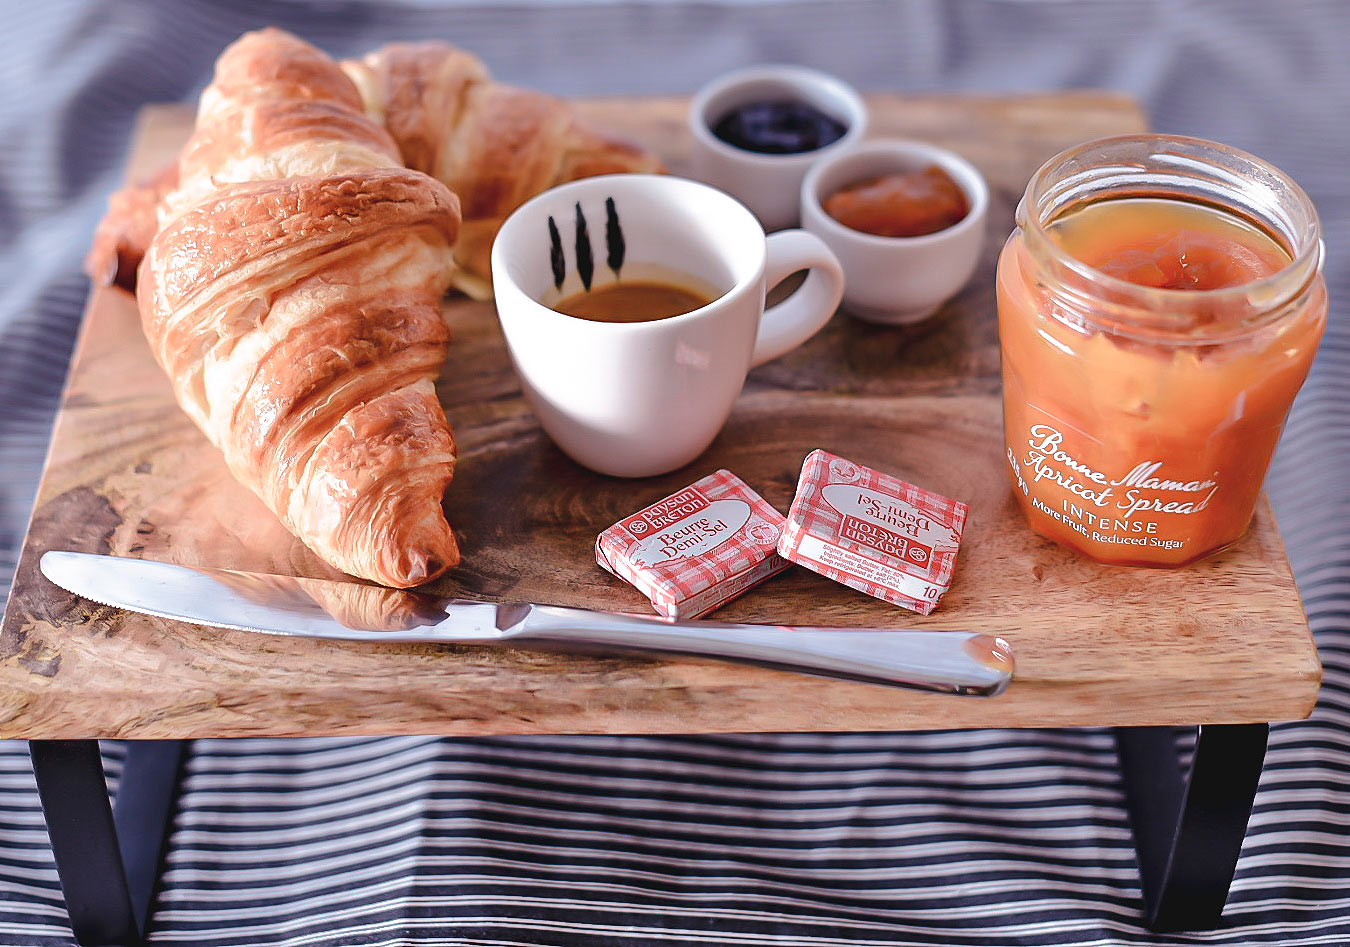 Croissant Cafe in Sydney Northern Beaches